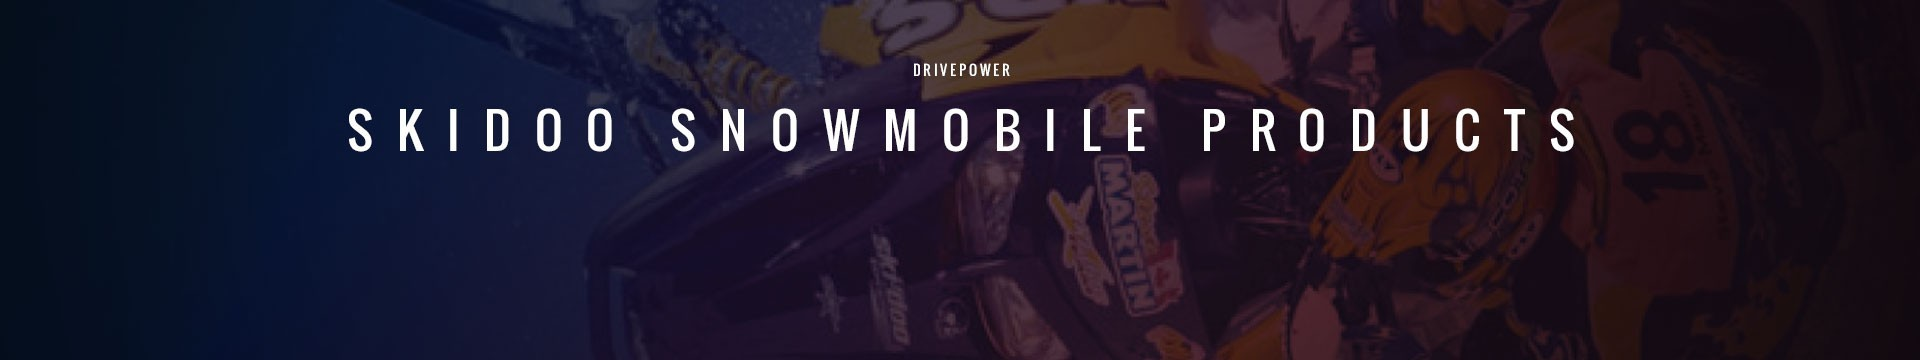 Drivepower SkiDoo Snowmobile Products